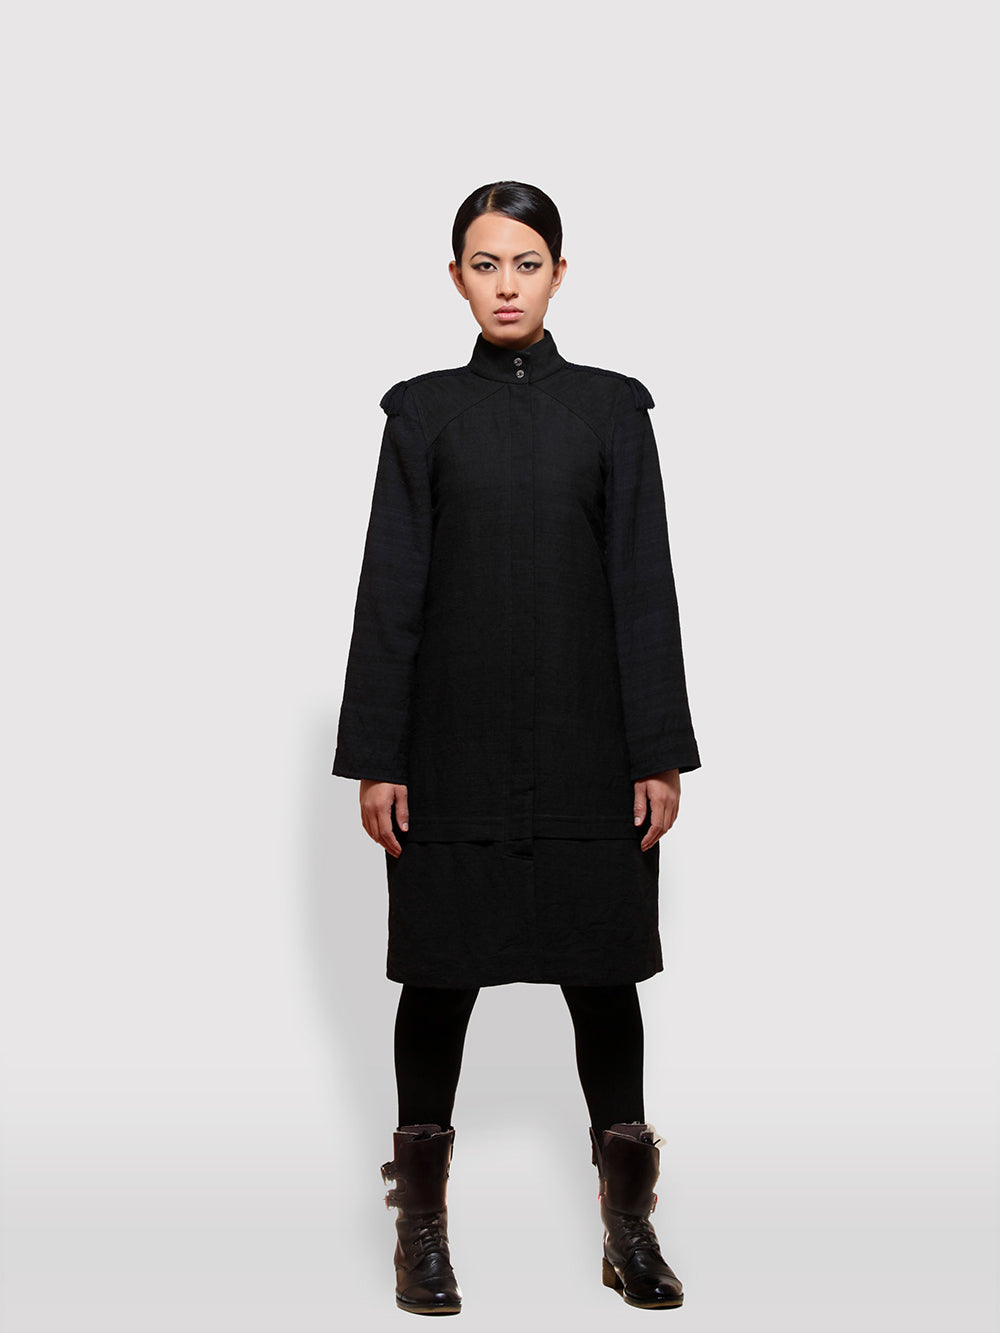 Braided Shoulder Overcoat made from handwoven mulberry and Eri silk designed by Khumanthem Atelier